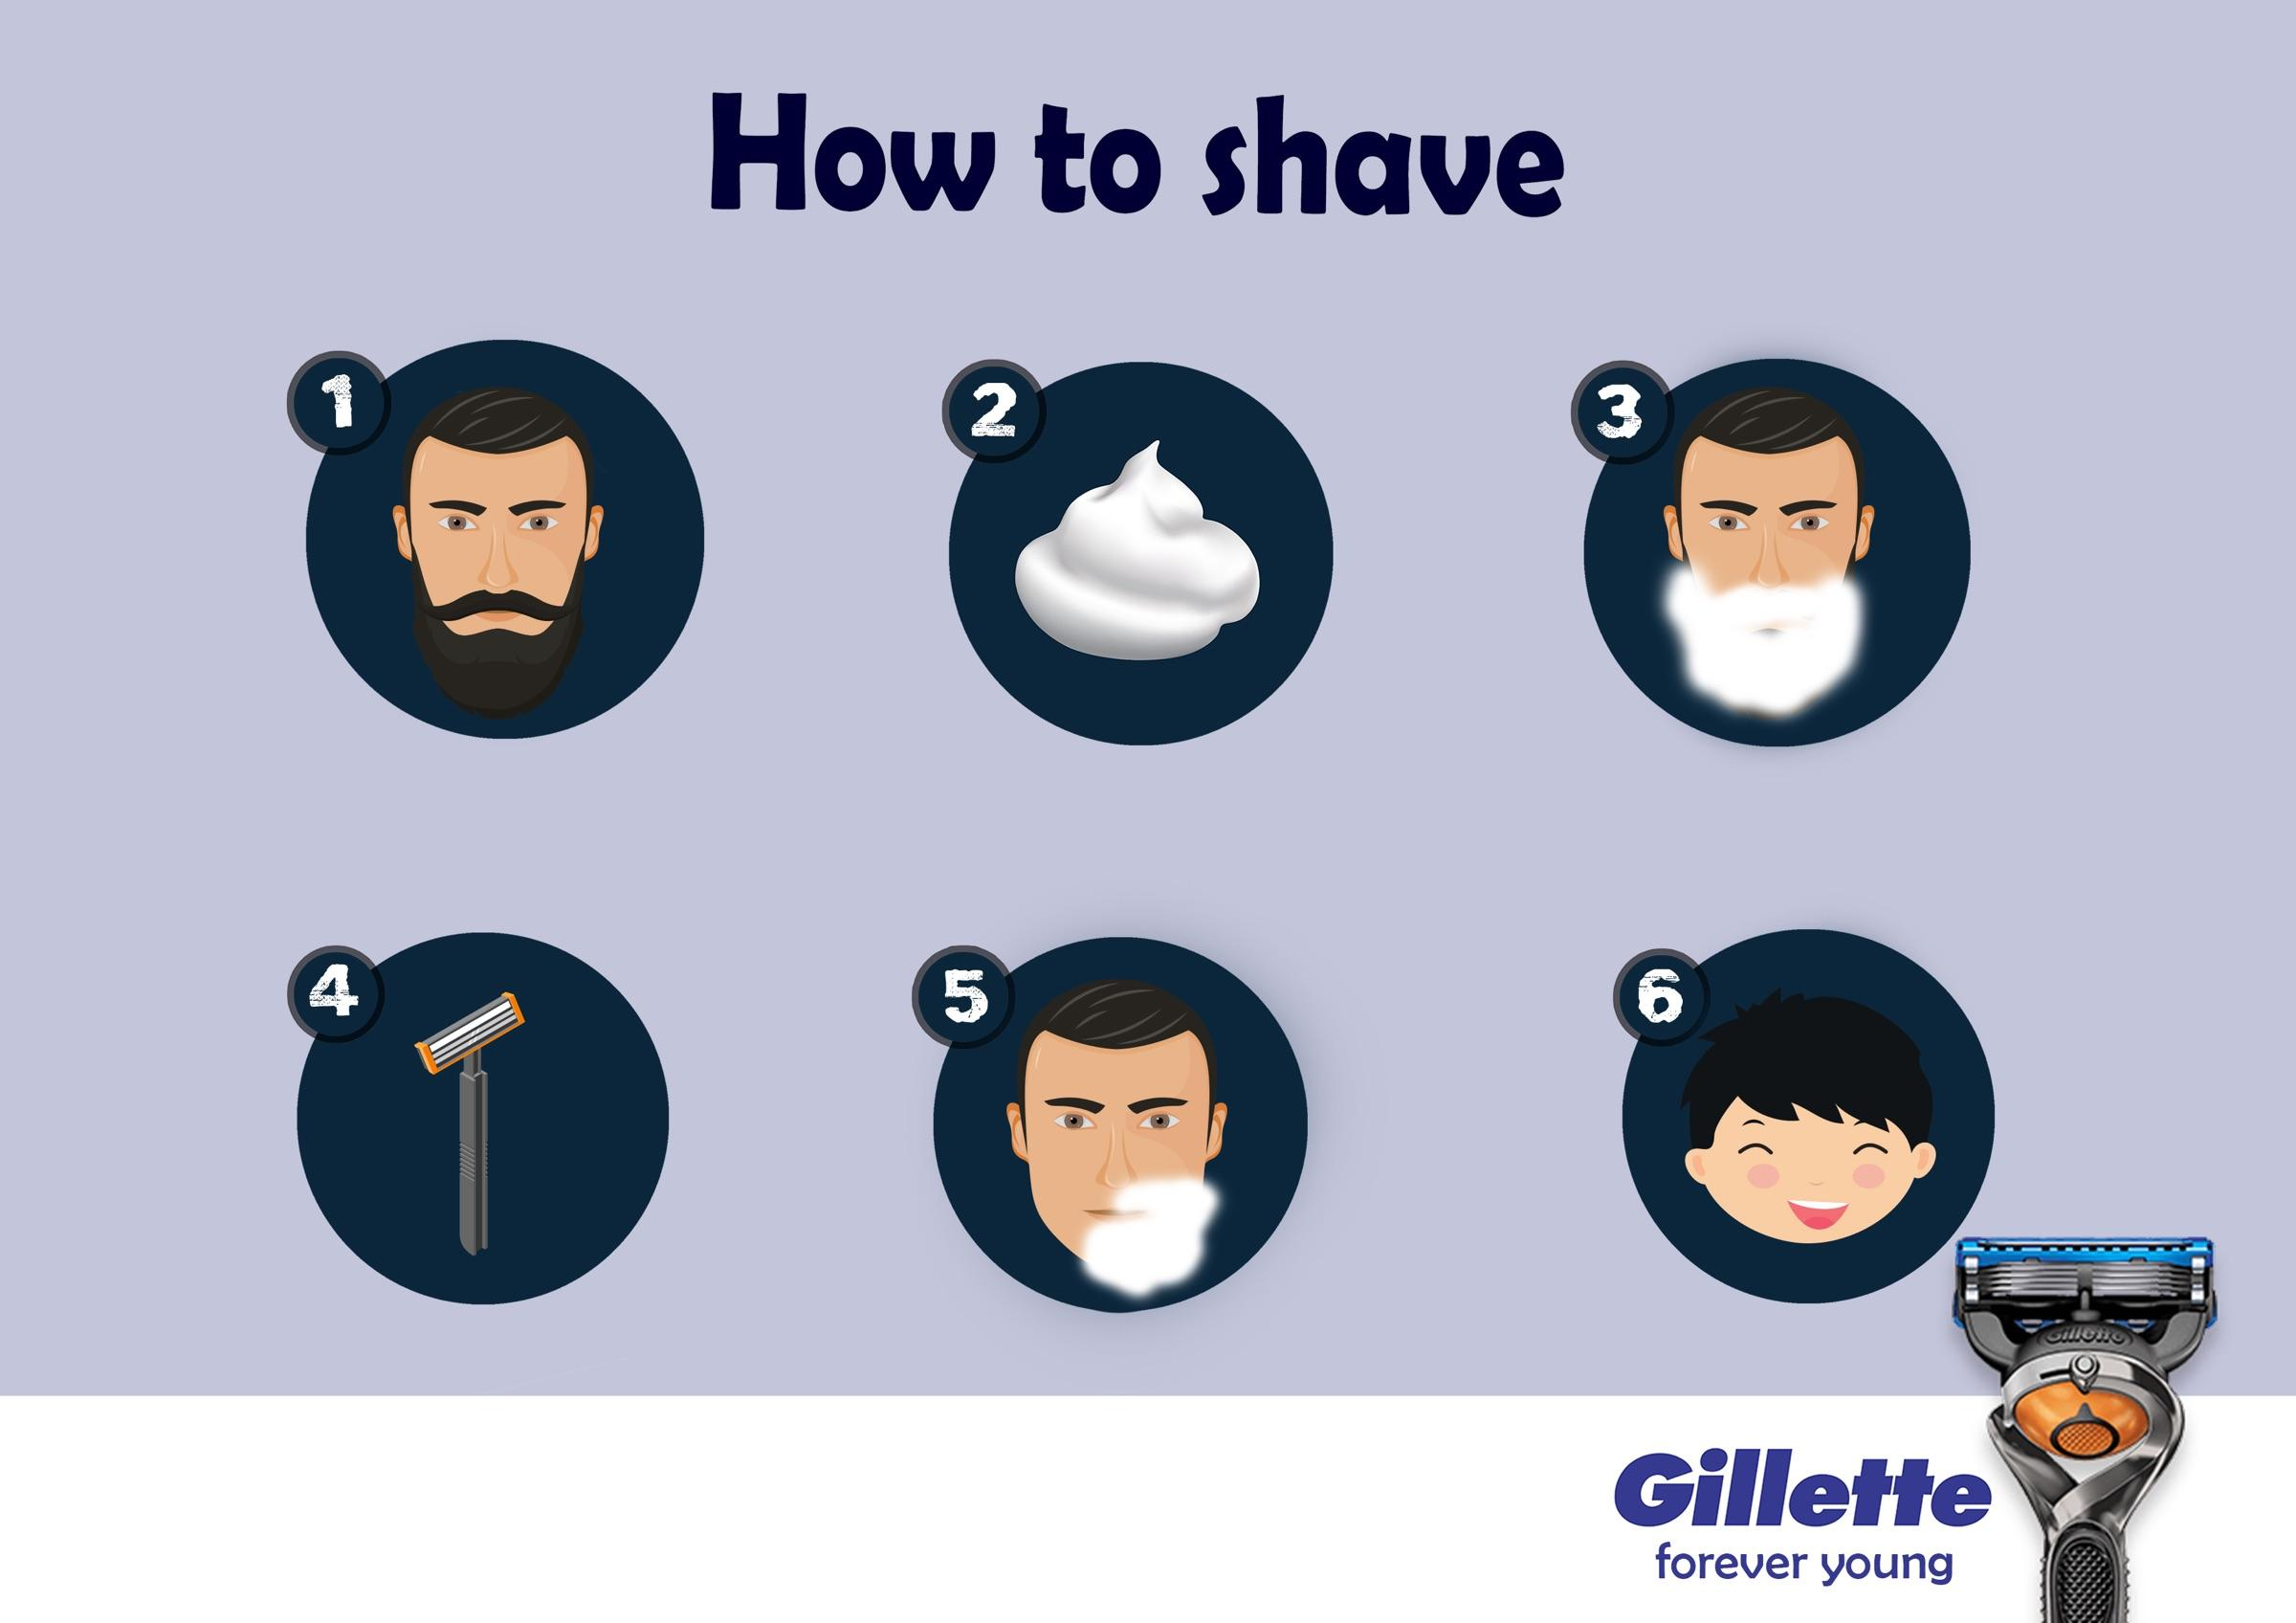 Gillette Print Ad - Forever young, 3